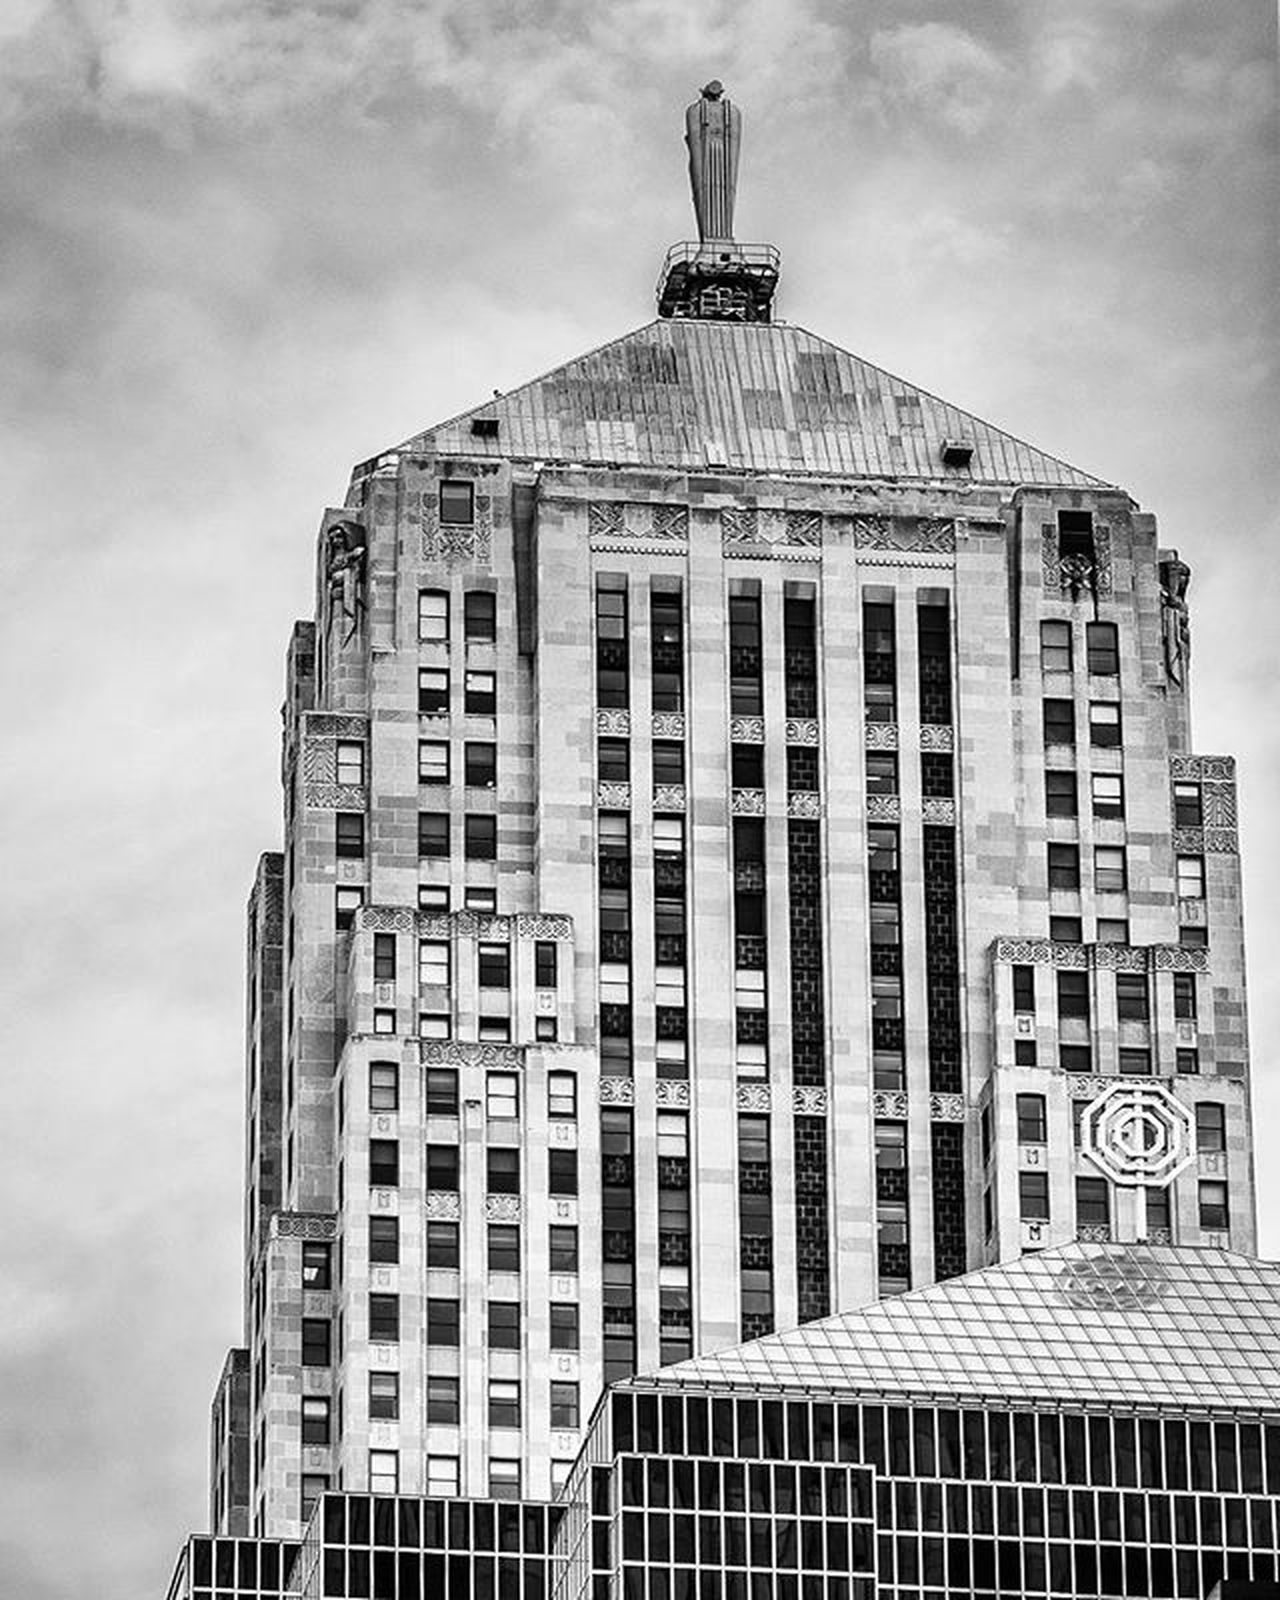 The other side of the Chicago Board of Trade building. Lookingup_architecture Sky_high_architecture Loves_architecture Jj_architecture Architecturewatch Rsa_architecture Archilovers Tv_buildings Chiarchitecture Architecturegram Instaarchitecture Windycity_bw Stunningbnw Loves_bnw Awesomebnw Rsa_bnw Bnw_captures Splendid_bnw Likechicago Mychicagopix Igerschicago Chicity_shots Flippinchi Artofchi Insta_chicago chicagoprimeshots choosechicago